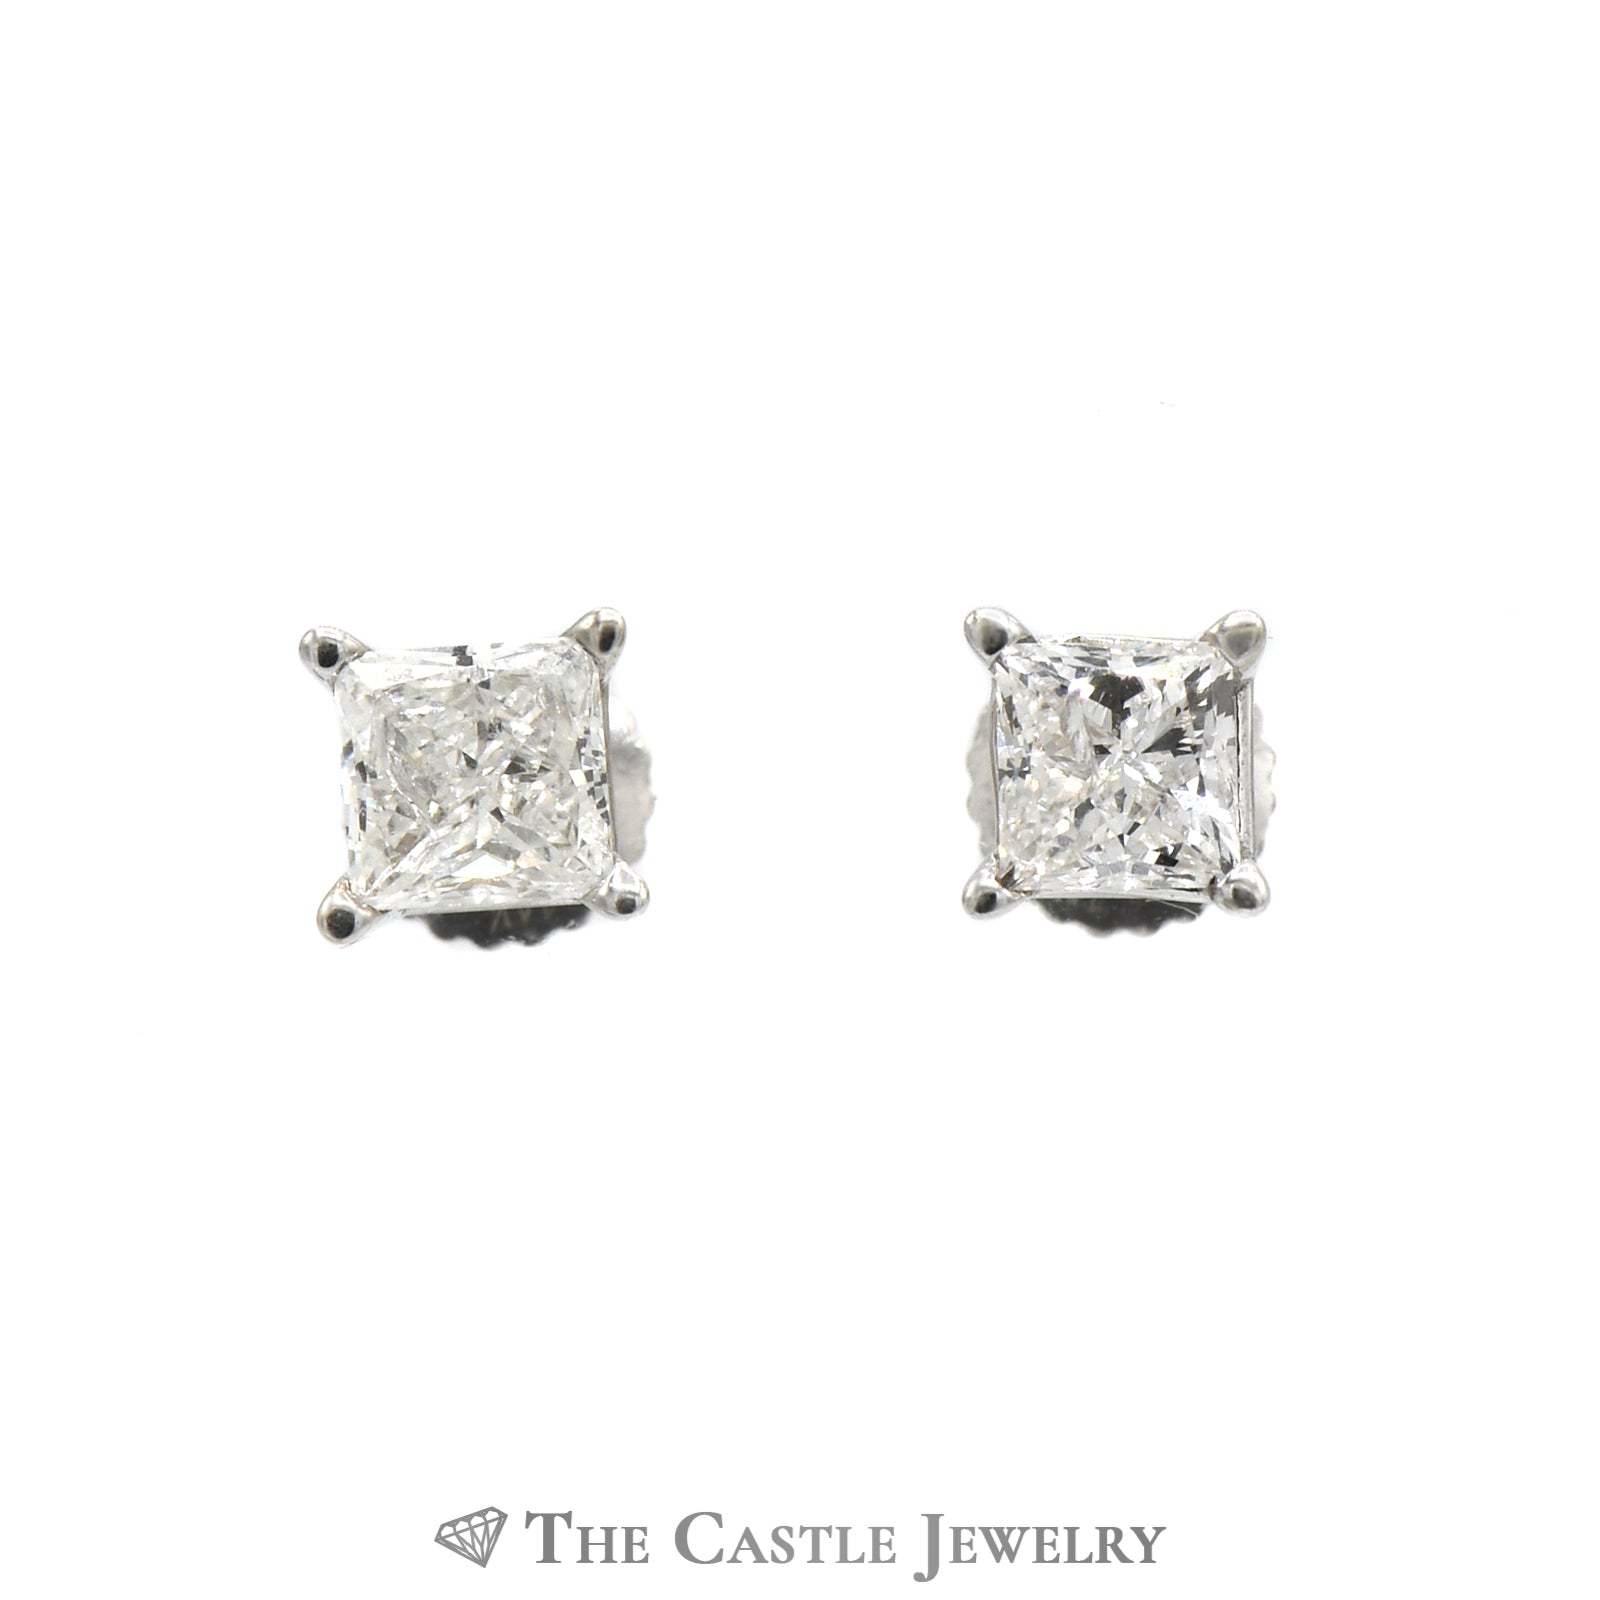 Princess Cut Diamond Stud Earrings 1cttw in 14K White Gold